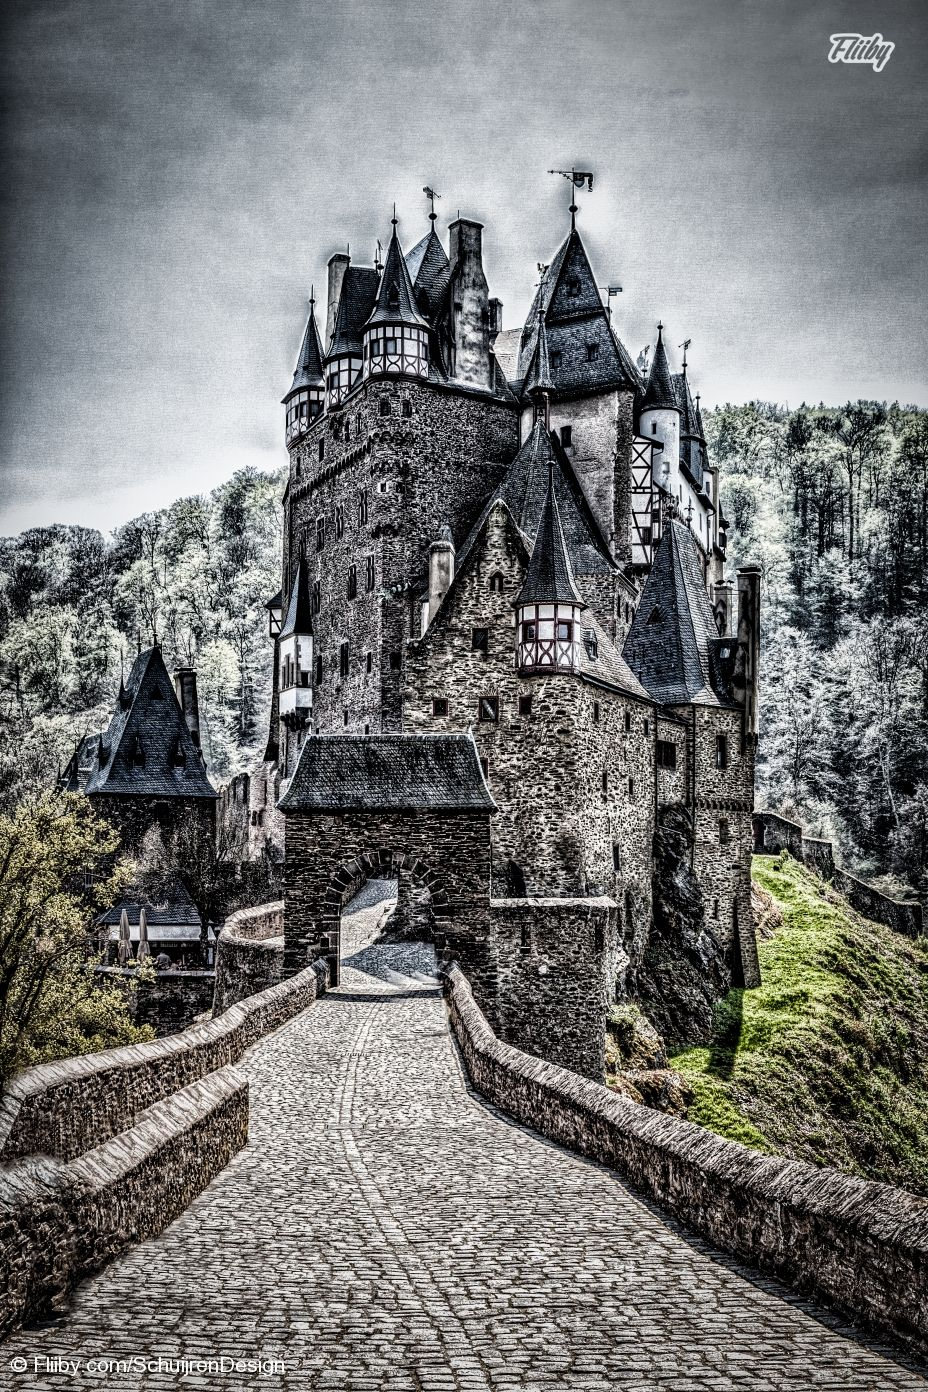 File of the Day June 29th, Burg Eltz from SchuijrenDesign. Like and Share it with your friends to support this photo: https://fliiby.com/file/moiyxwtktzc/?utm_content=buffer7bb2a&utm_medium=social&utm_source=pinterest.com&utm_campaign=buffer #fliiby #photooftheday #potd #photo